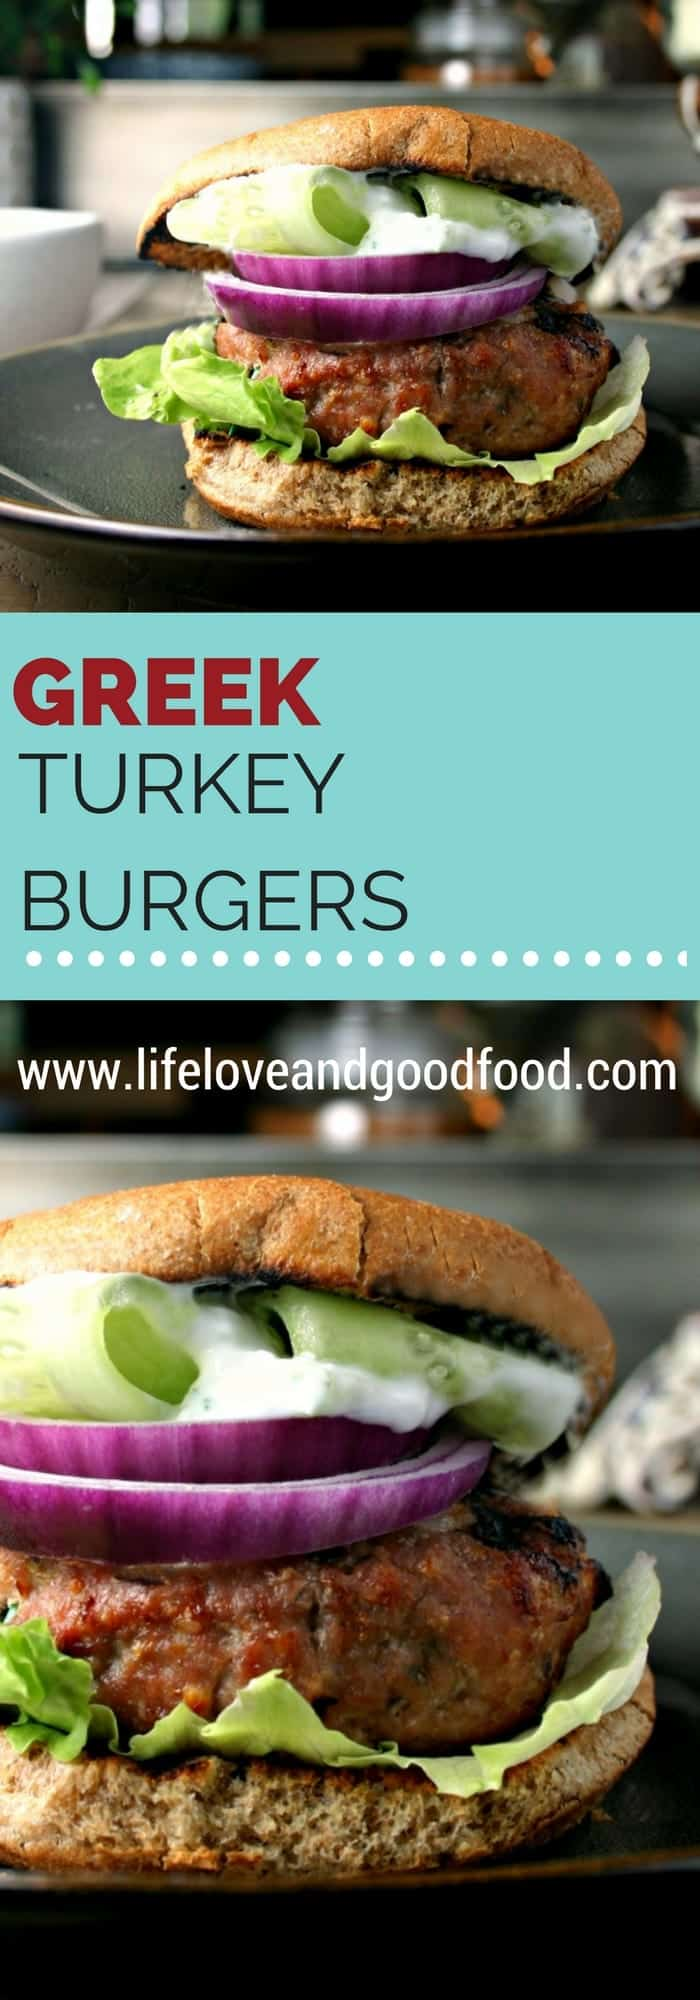 Greek Turkey Burgers | www.lifeloveandgoodfood.com